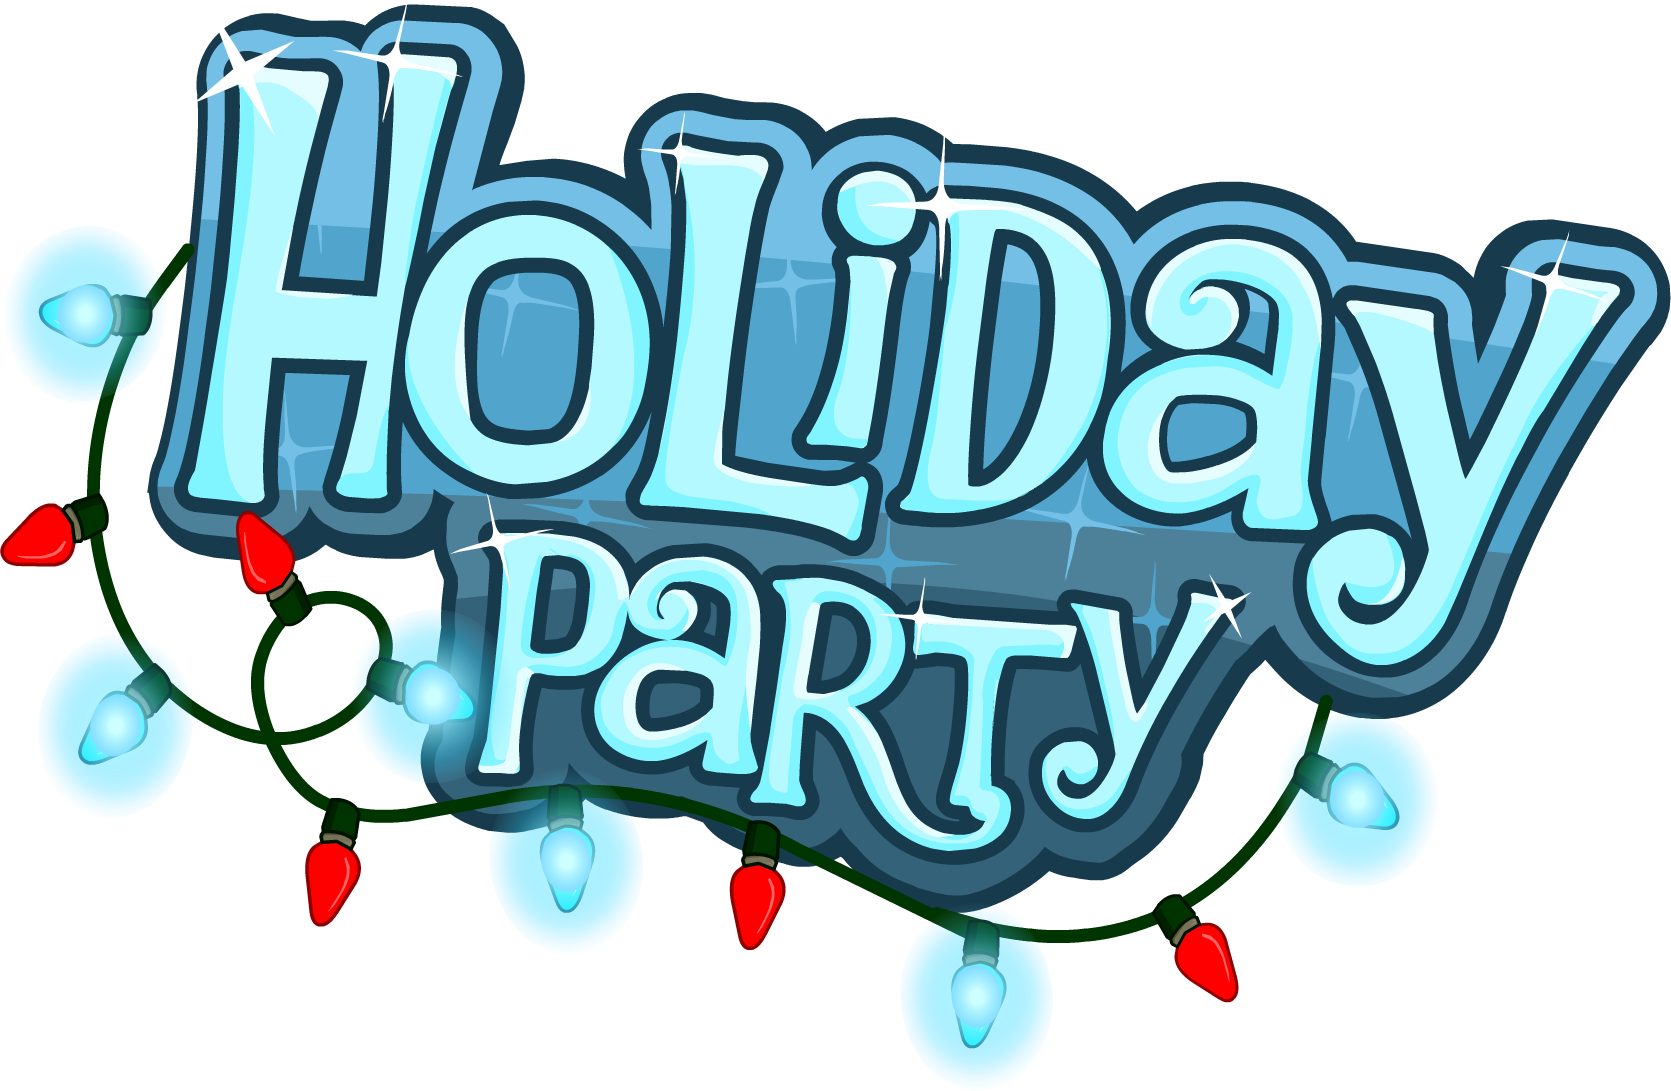 Christmas holiday party clipart png transparent 28+ Collection of Office Holiday Party Clipart | High quality, free ... png transparent